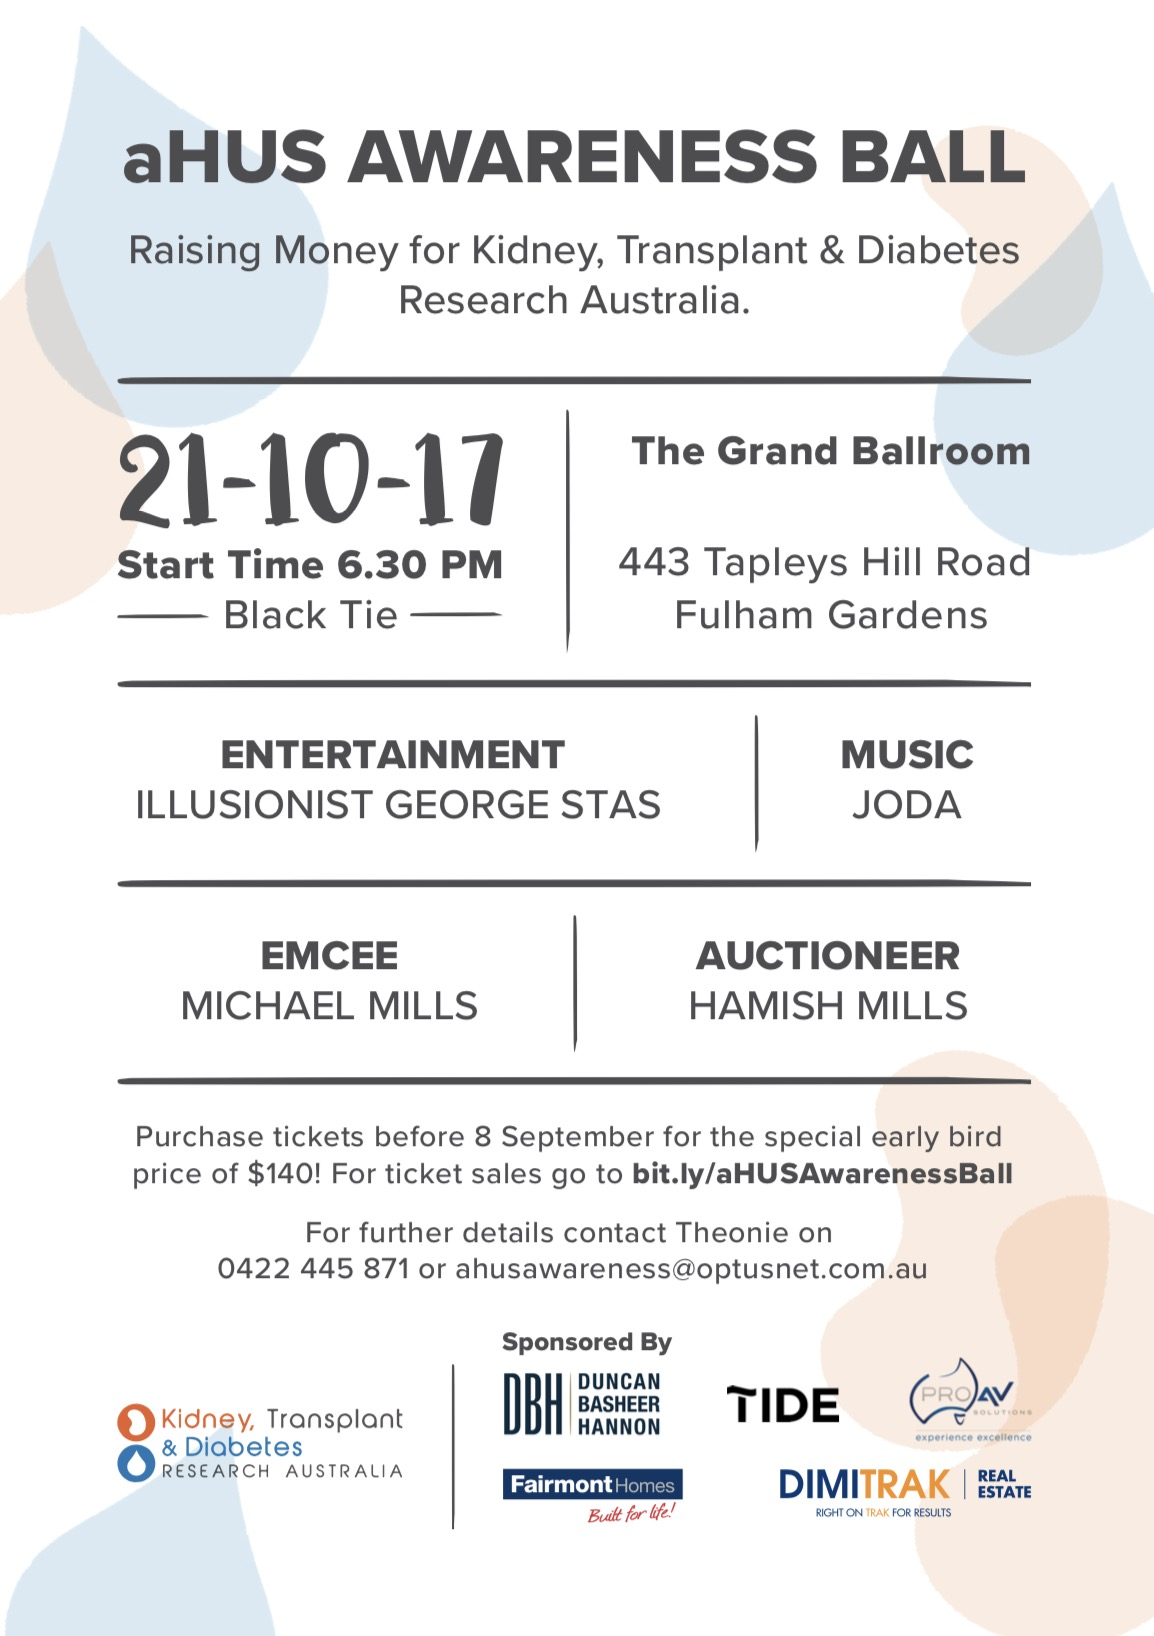 aHUS Awareness Ball Flyer